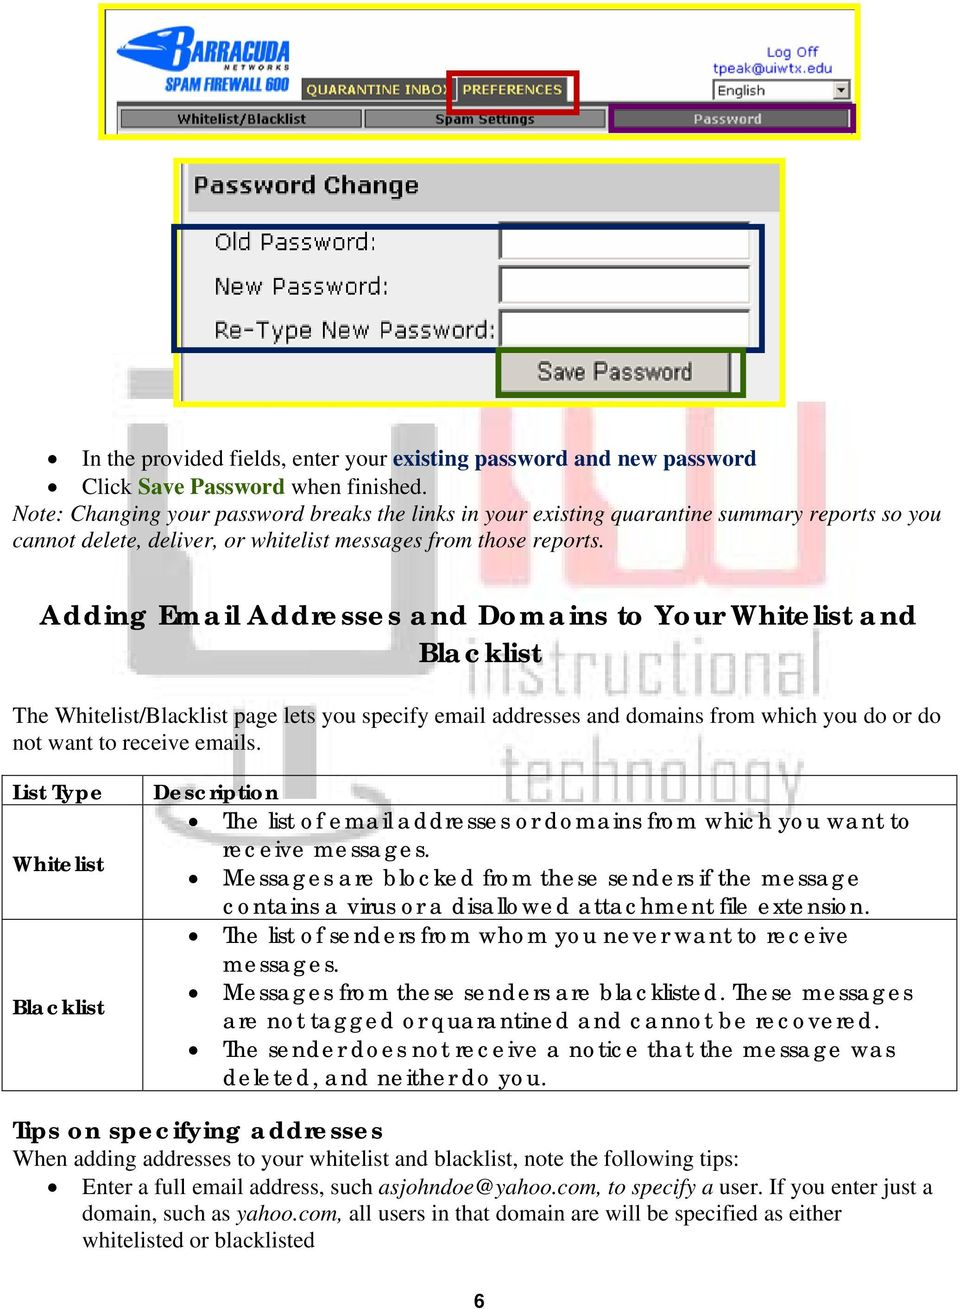 Adding Email Addresses and Domains to Your Whitelist and Blacklist The Whitelist/Blacklist page lets you specify email addresses and domains from which you do or do not want to receive emails.